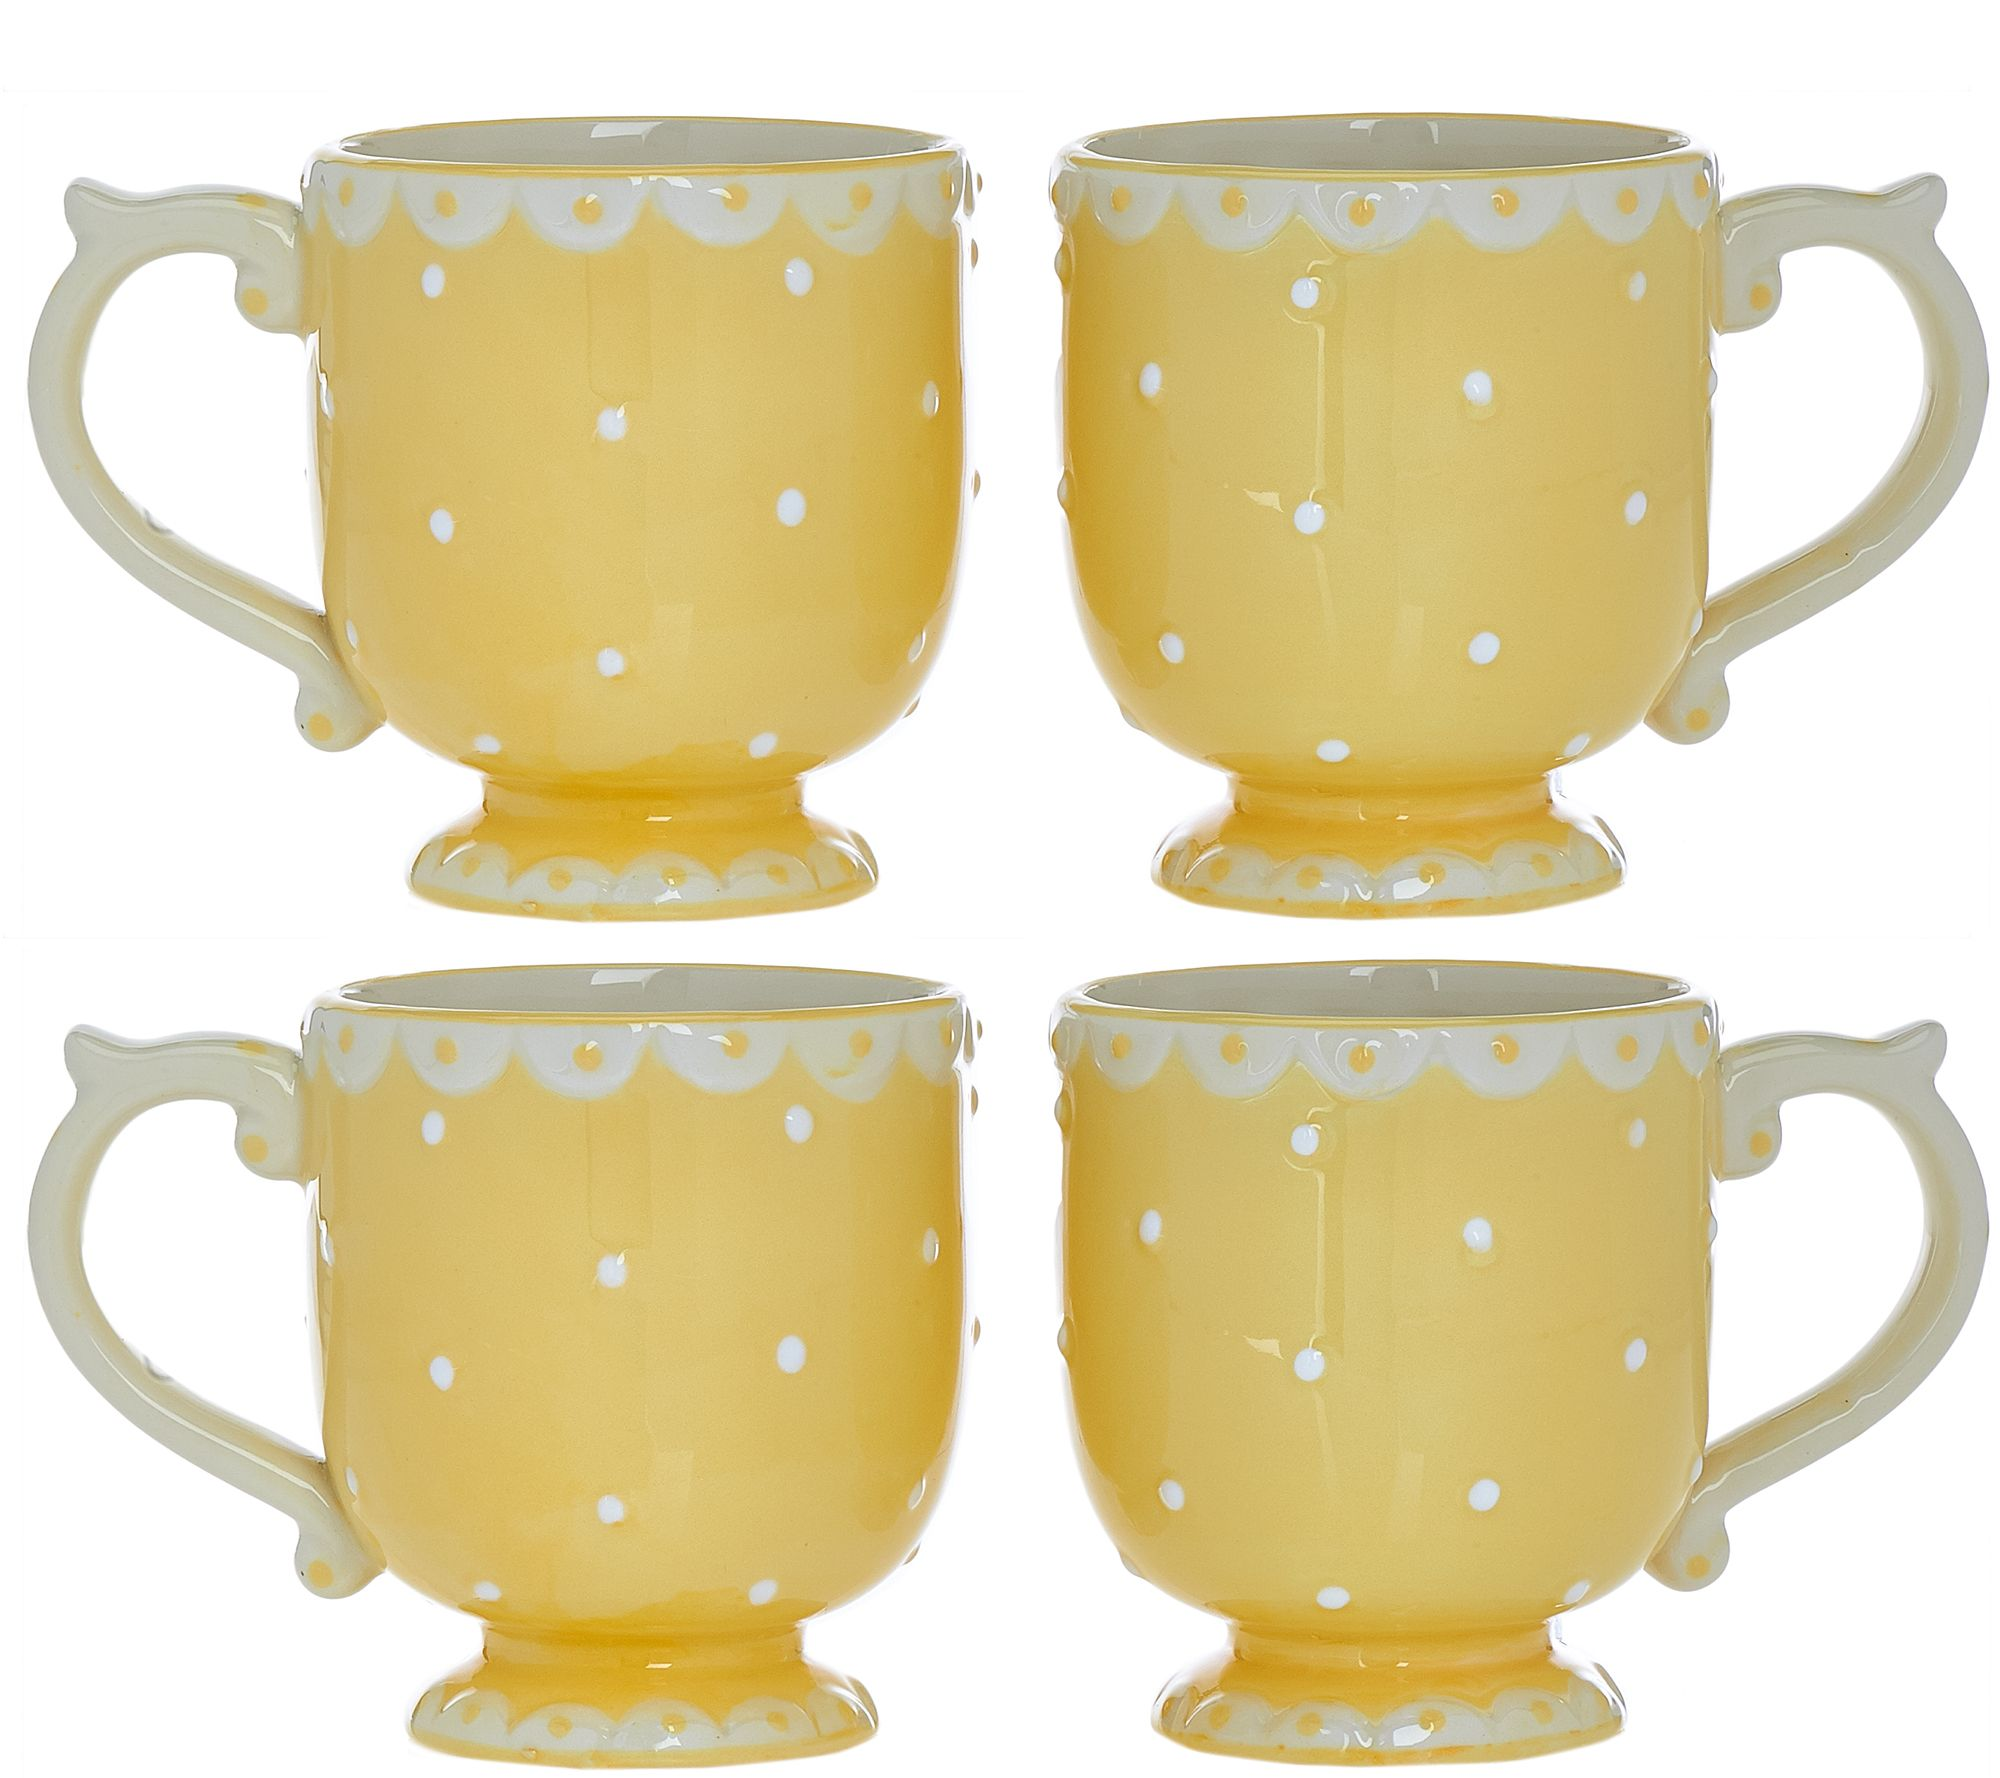 Set of 4 Swiss Dot Plates, Bowls, or Mugs by Valerie